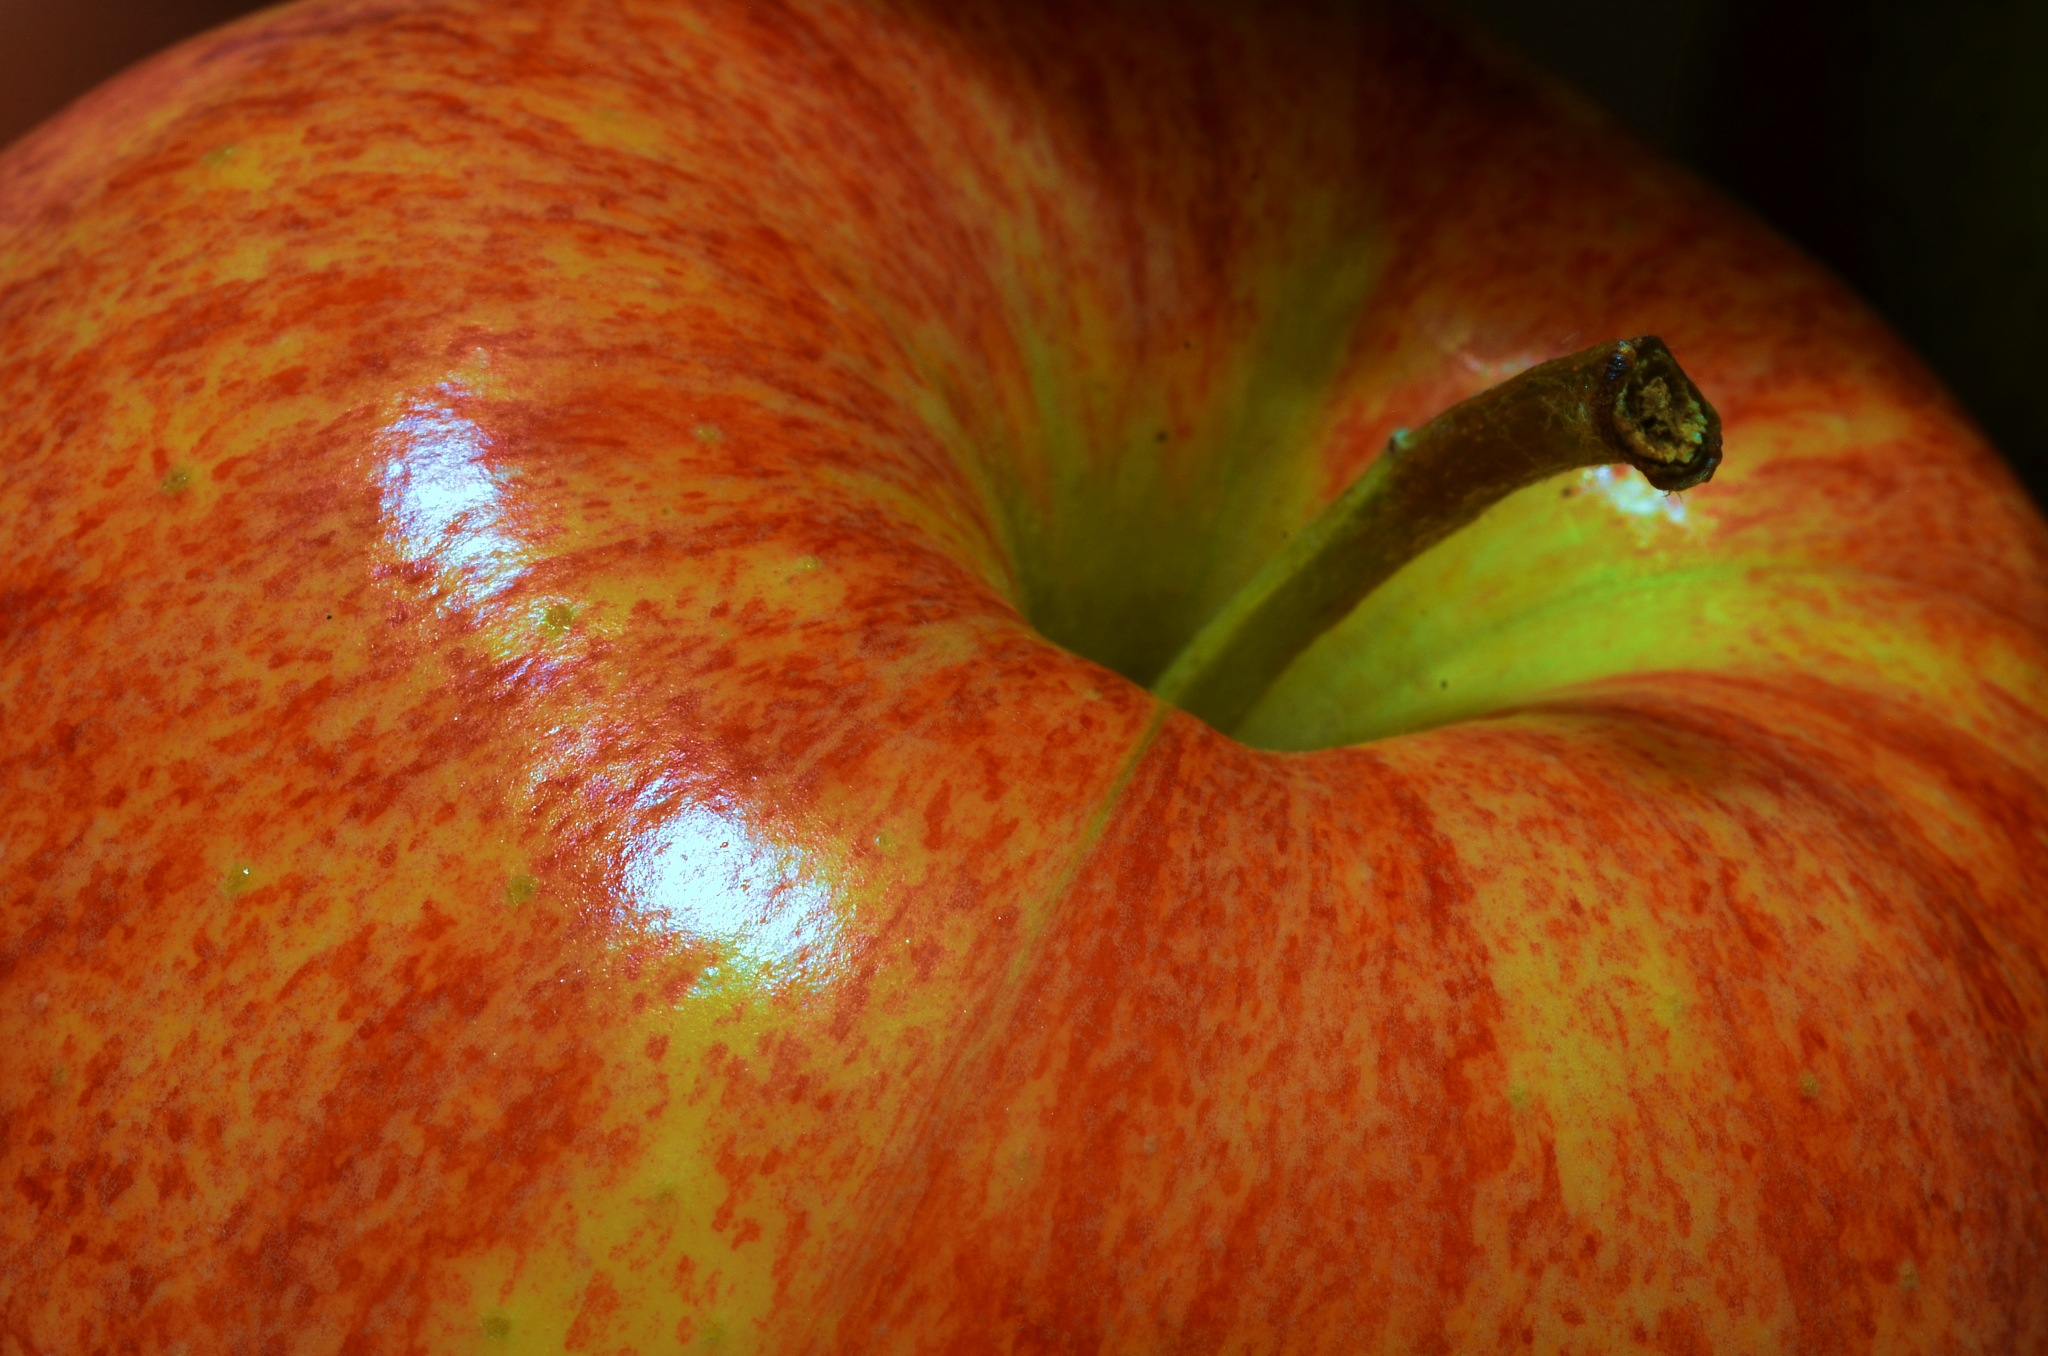 Apple by Sridhar R Setty